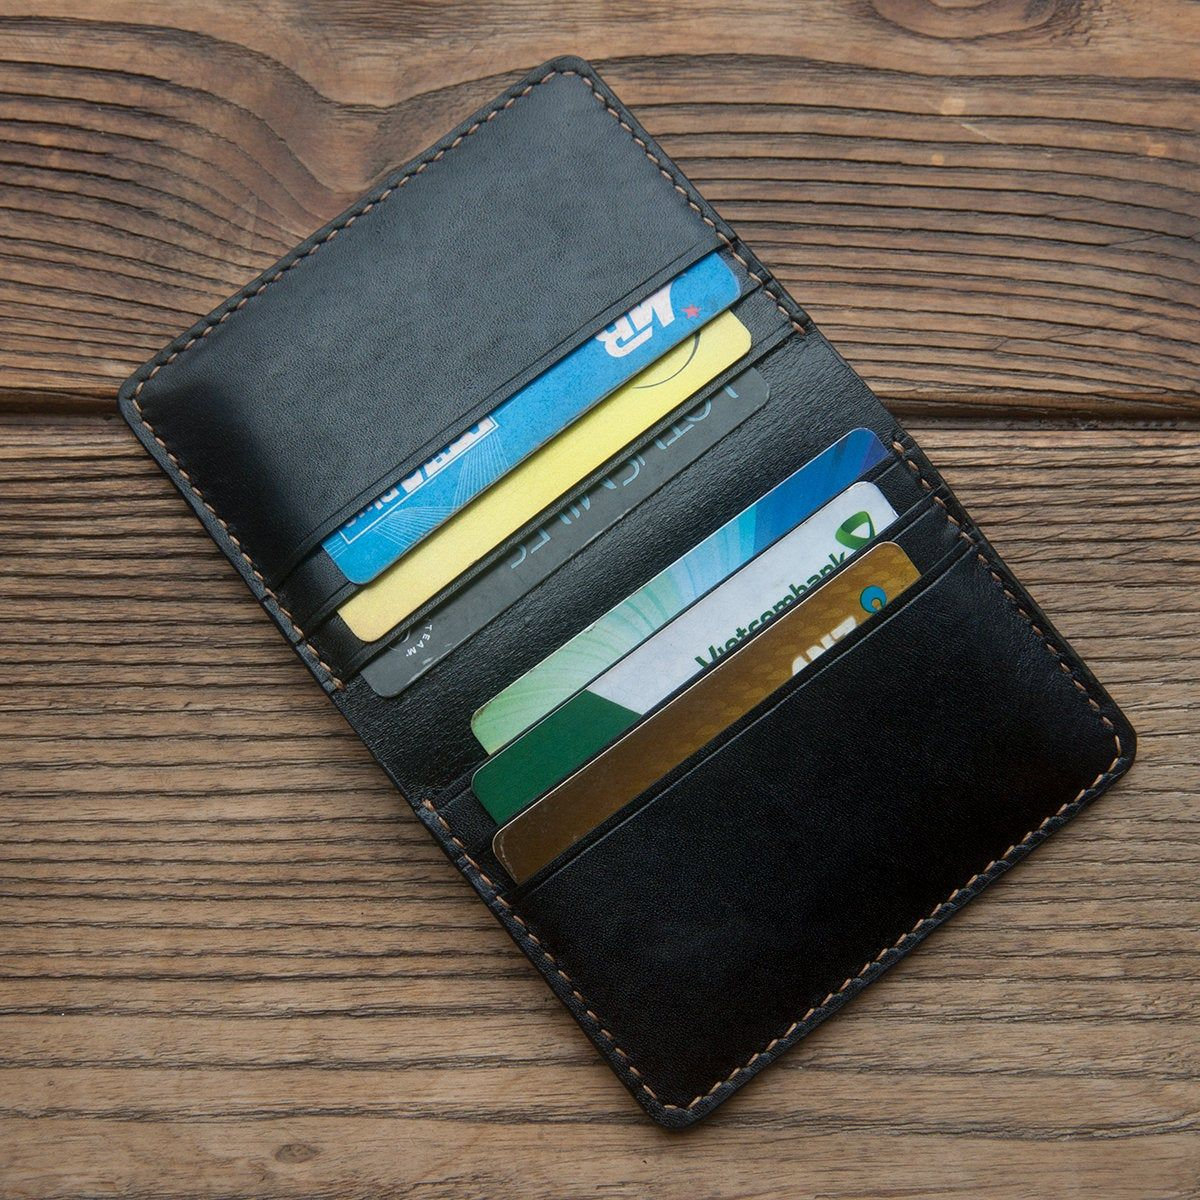 Business Black Leather Card Case Handmade Wallet Card Etsy Leather Card Case Leather Card Wallet Personalized Wallet